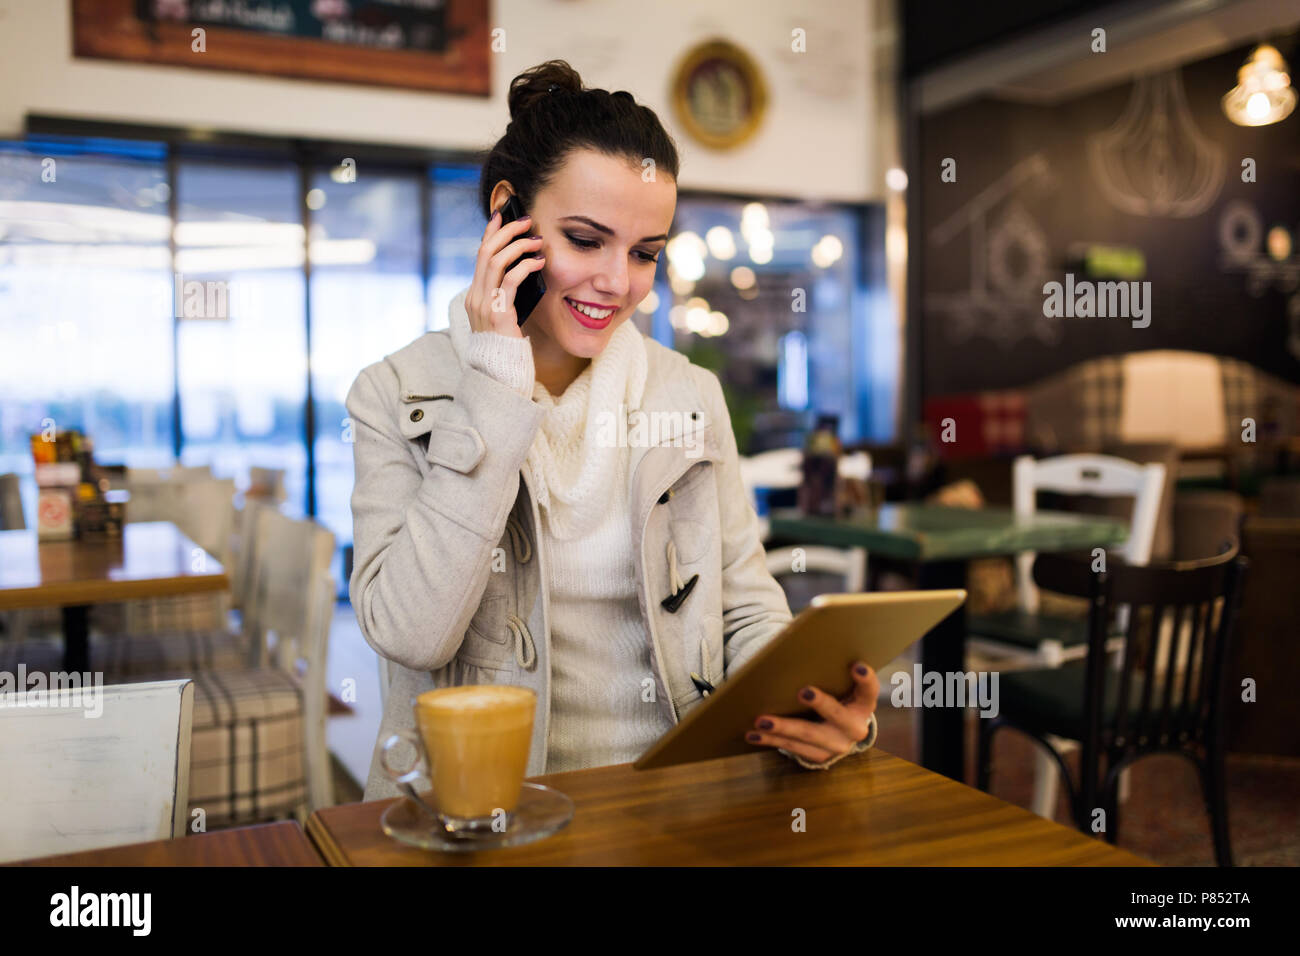 Attractive young woman using tablet in cafe Stock Photo